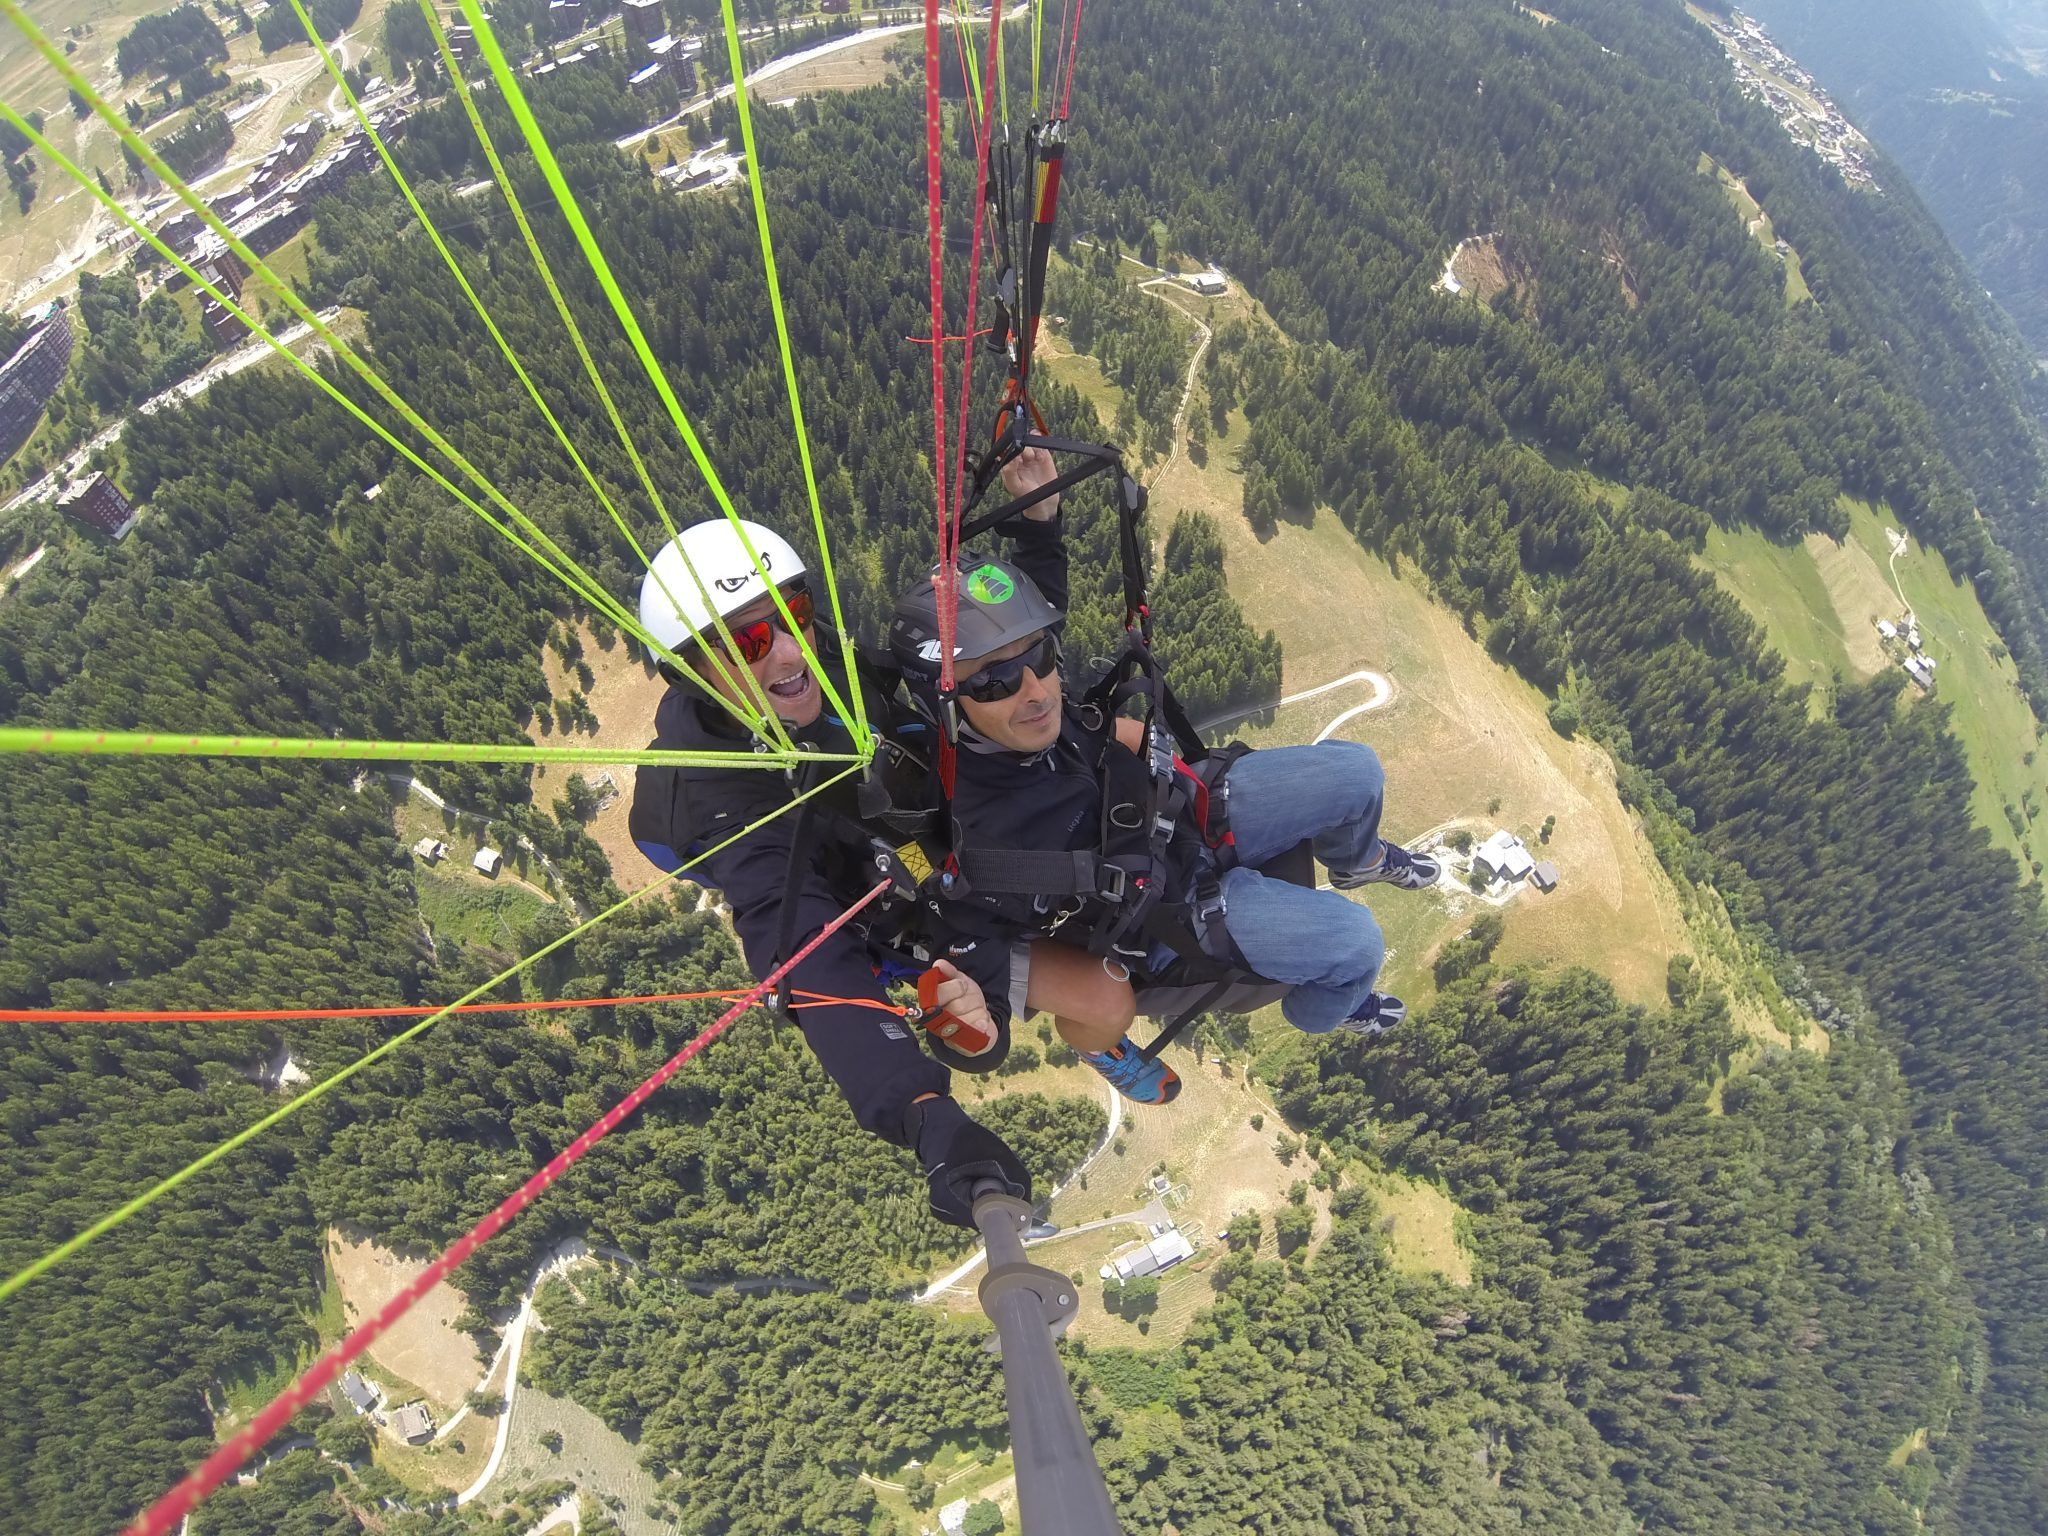 Unbelievable July month for paragliding. 9